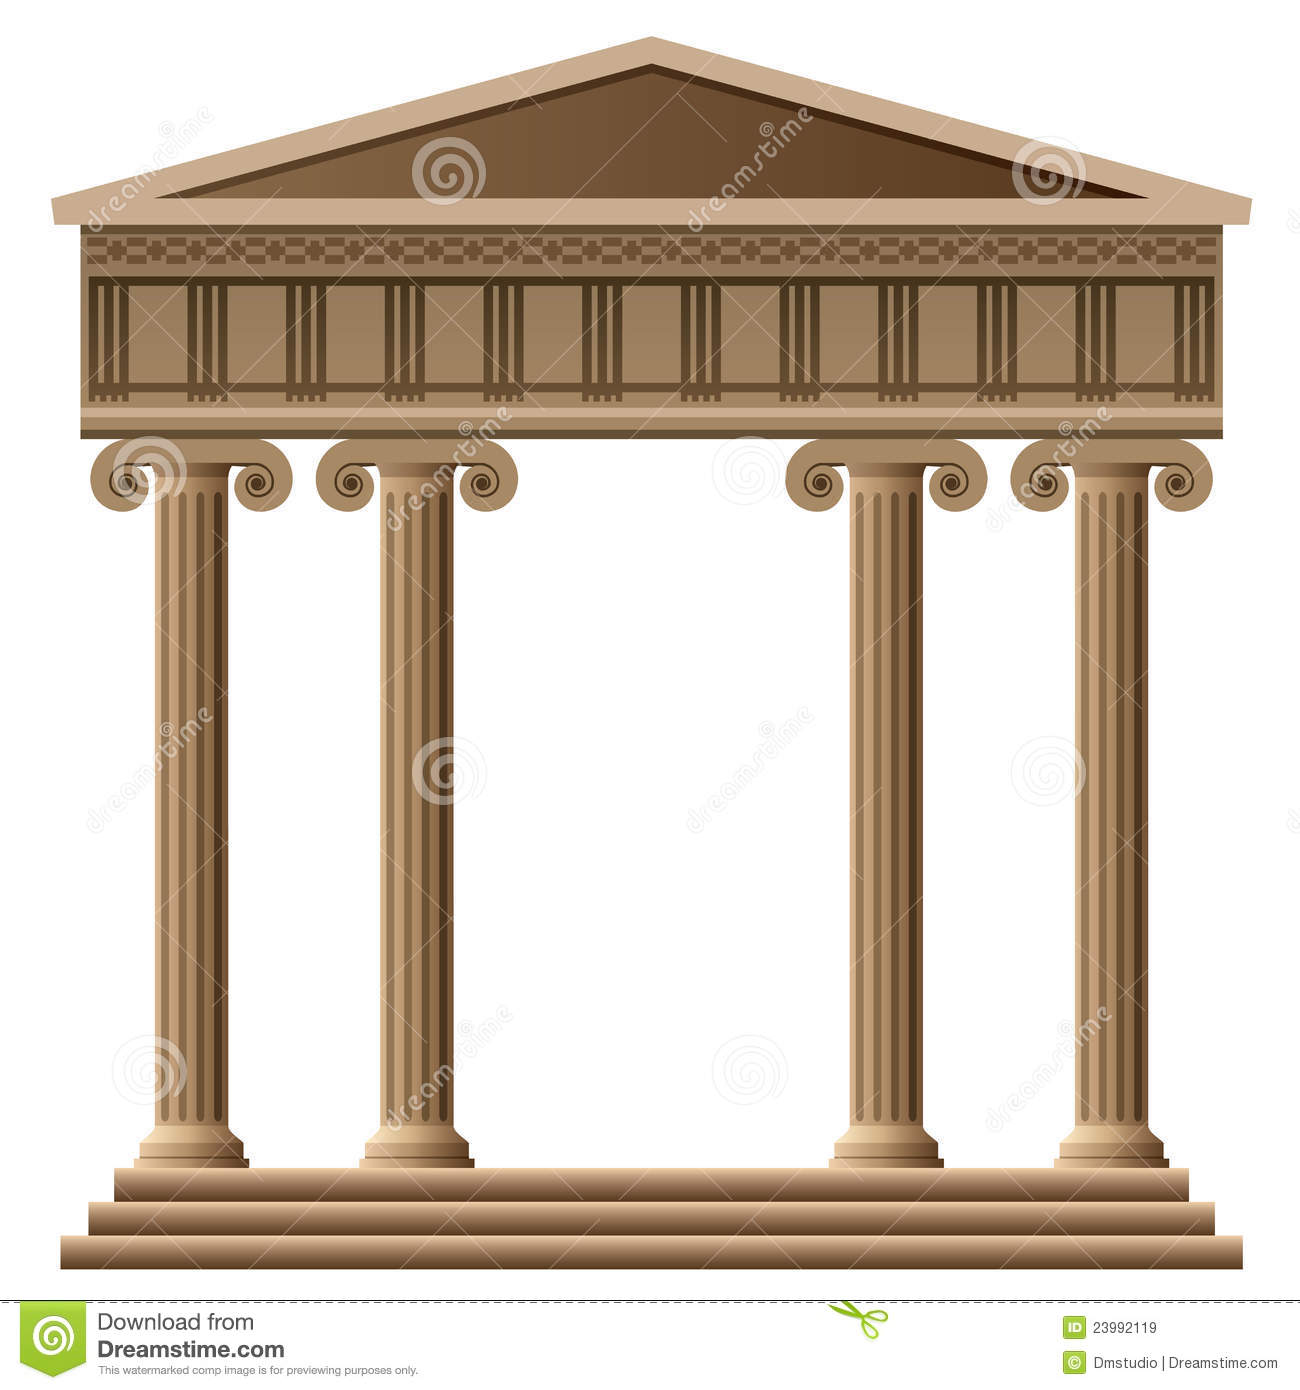 Greek Buildings Clipart.